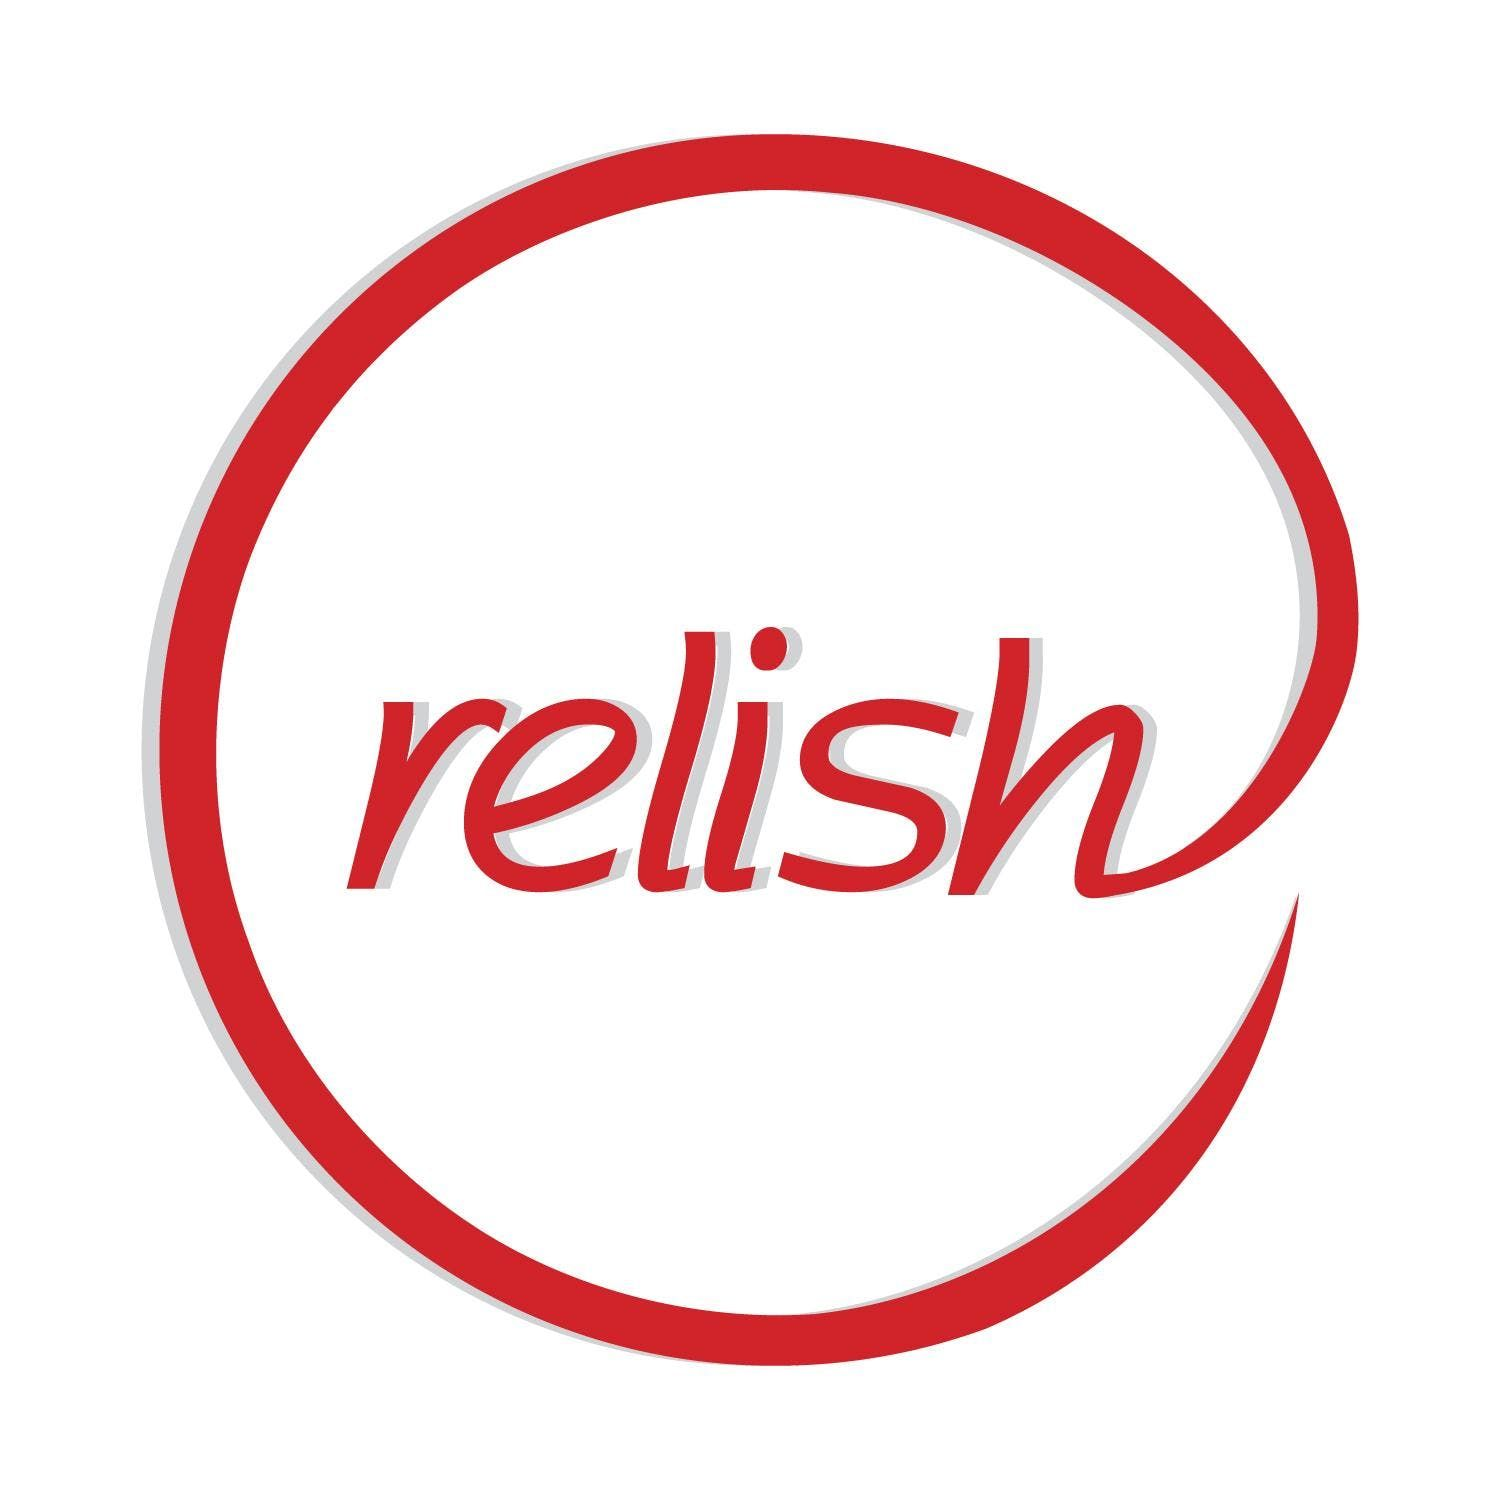 Saturday Night in Cincinnati  Speed Dating Event for Singles  Presented by Relish Dating